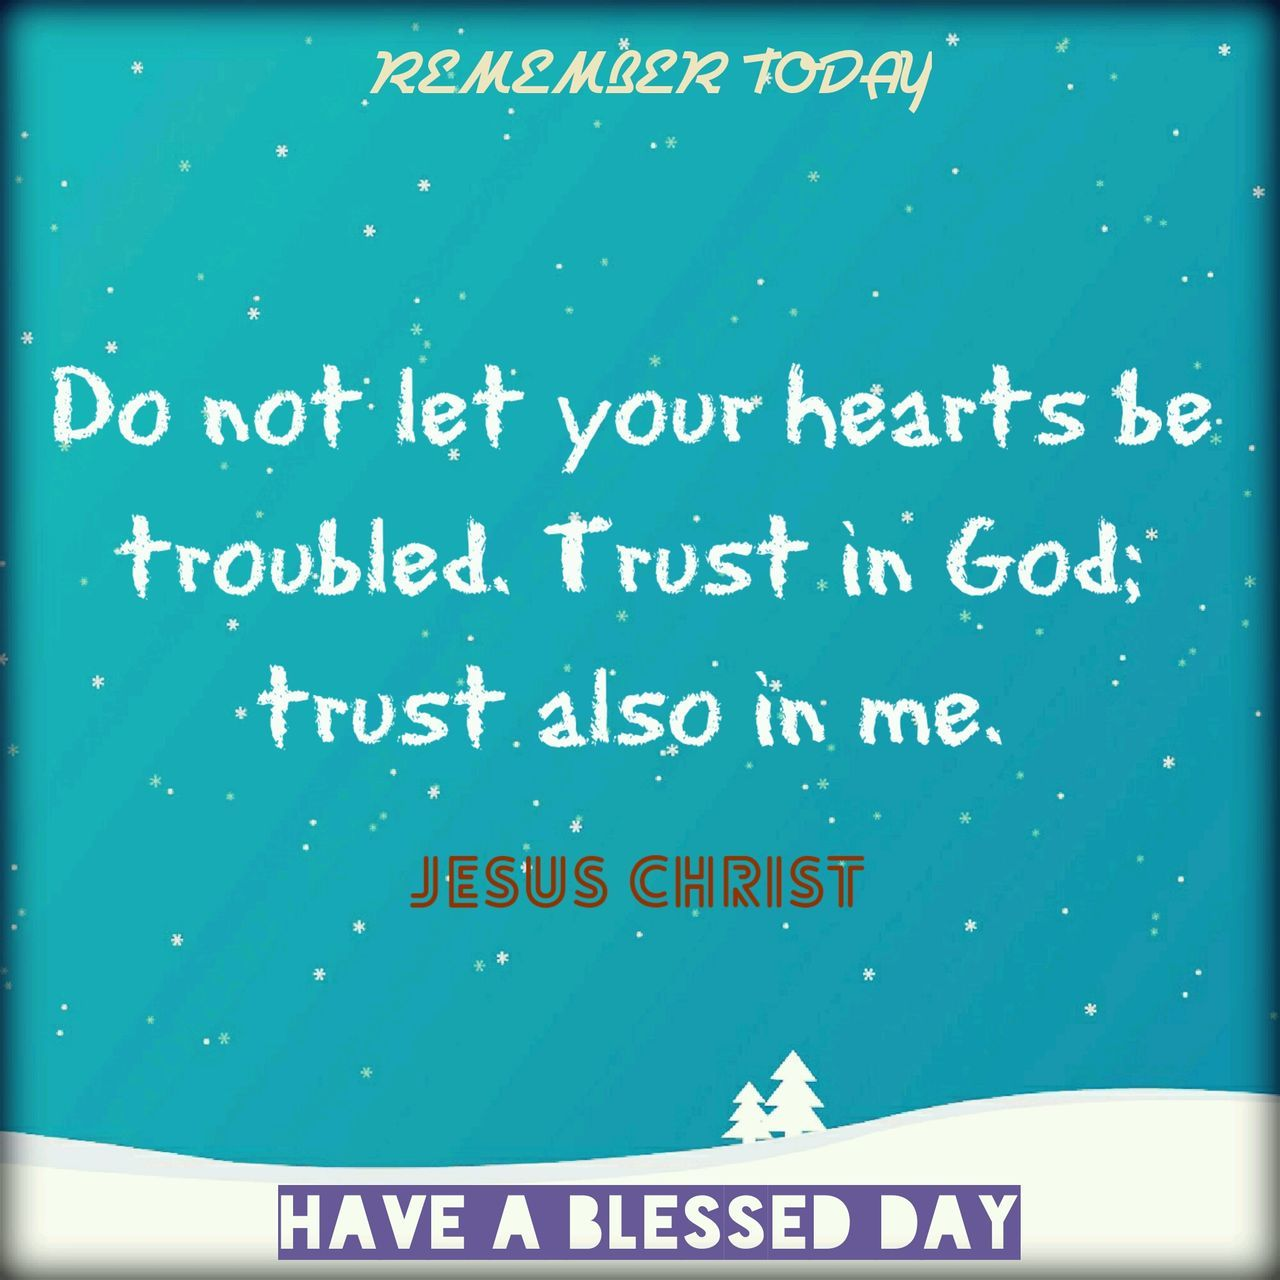 Quote for today Samsung Galaxy Note 5 Today ♥ Remember Quote Of The Day  Quotestoliveby Quoteoftheday Quote Quotes♡ Quotesaboutlife Quotes Quotestagram Quotes And Pics I Like Today.😏 Jesus Jesus Is My Savior Bible Verses